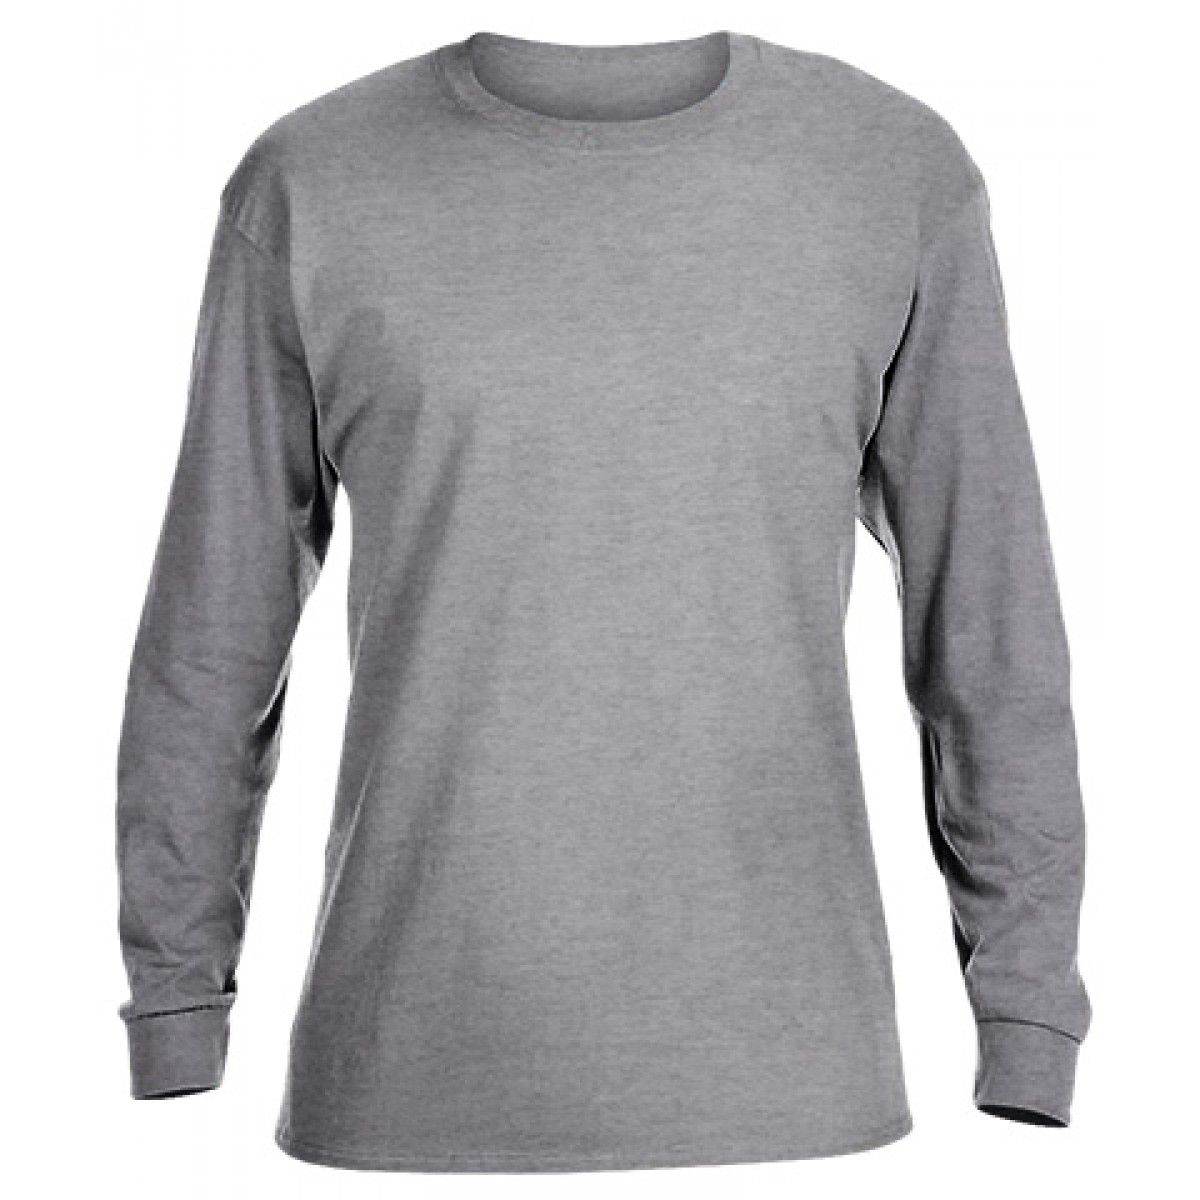 Heavy Cotton Long-Sleeve Adidas Shirt-Sports Grey-XL